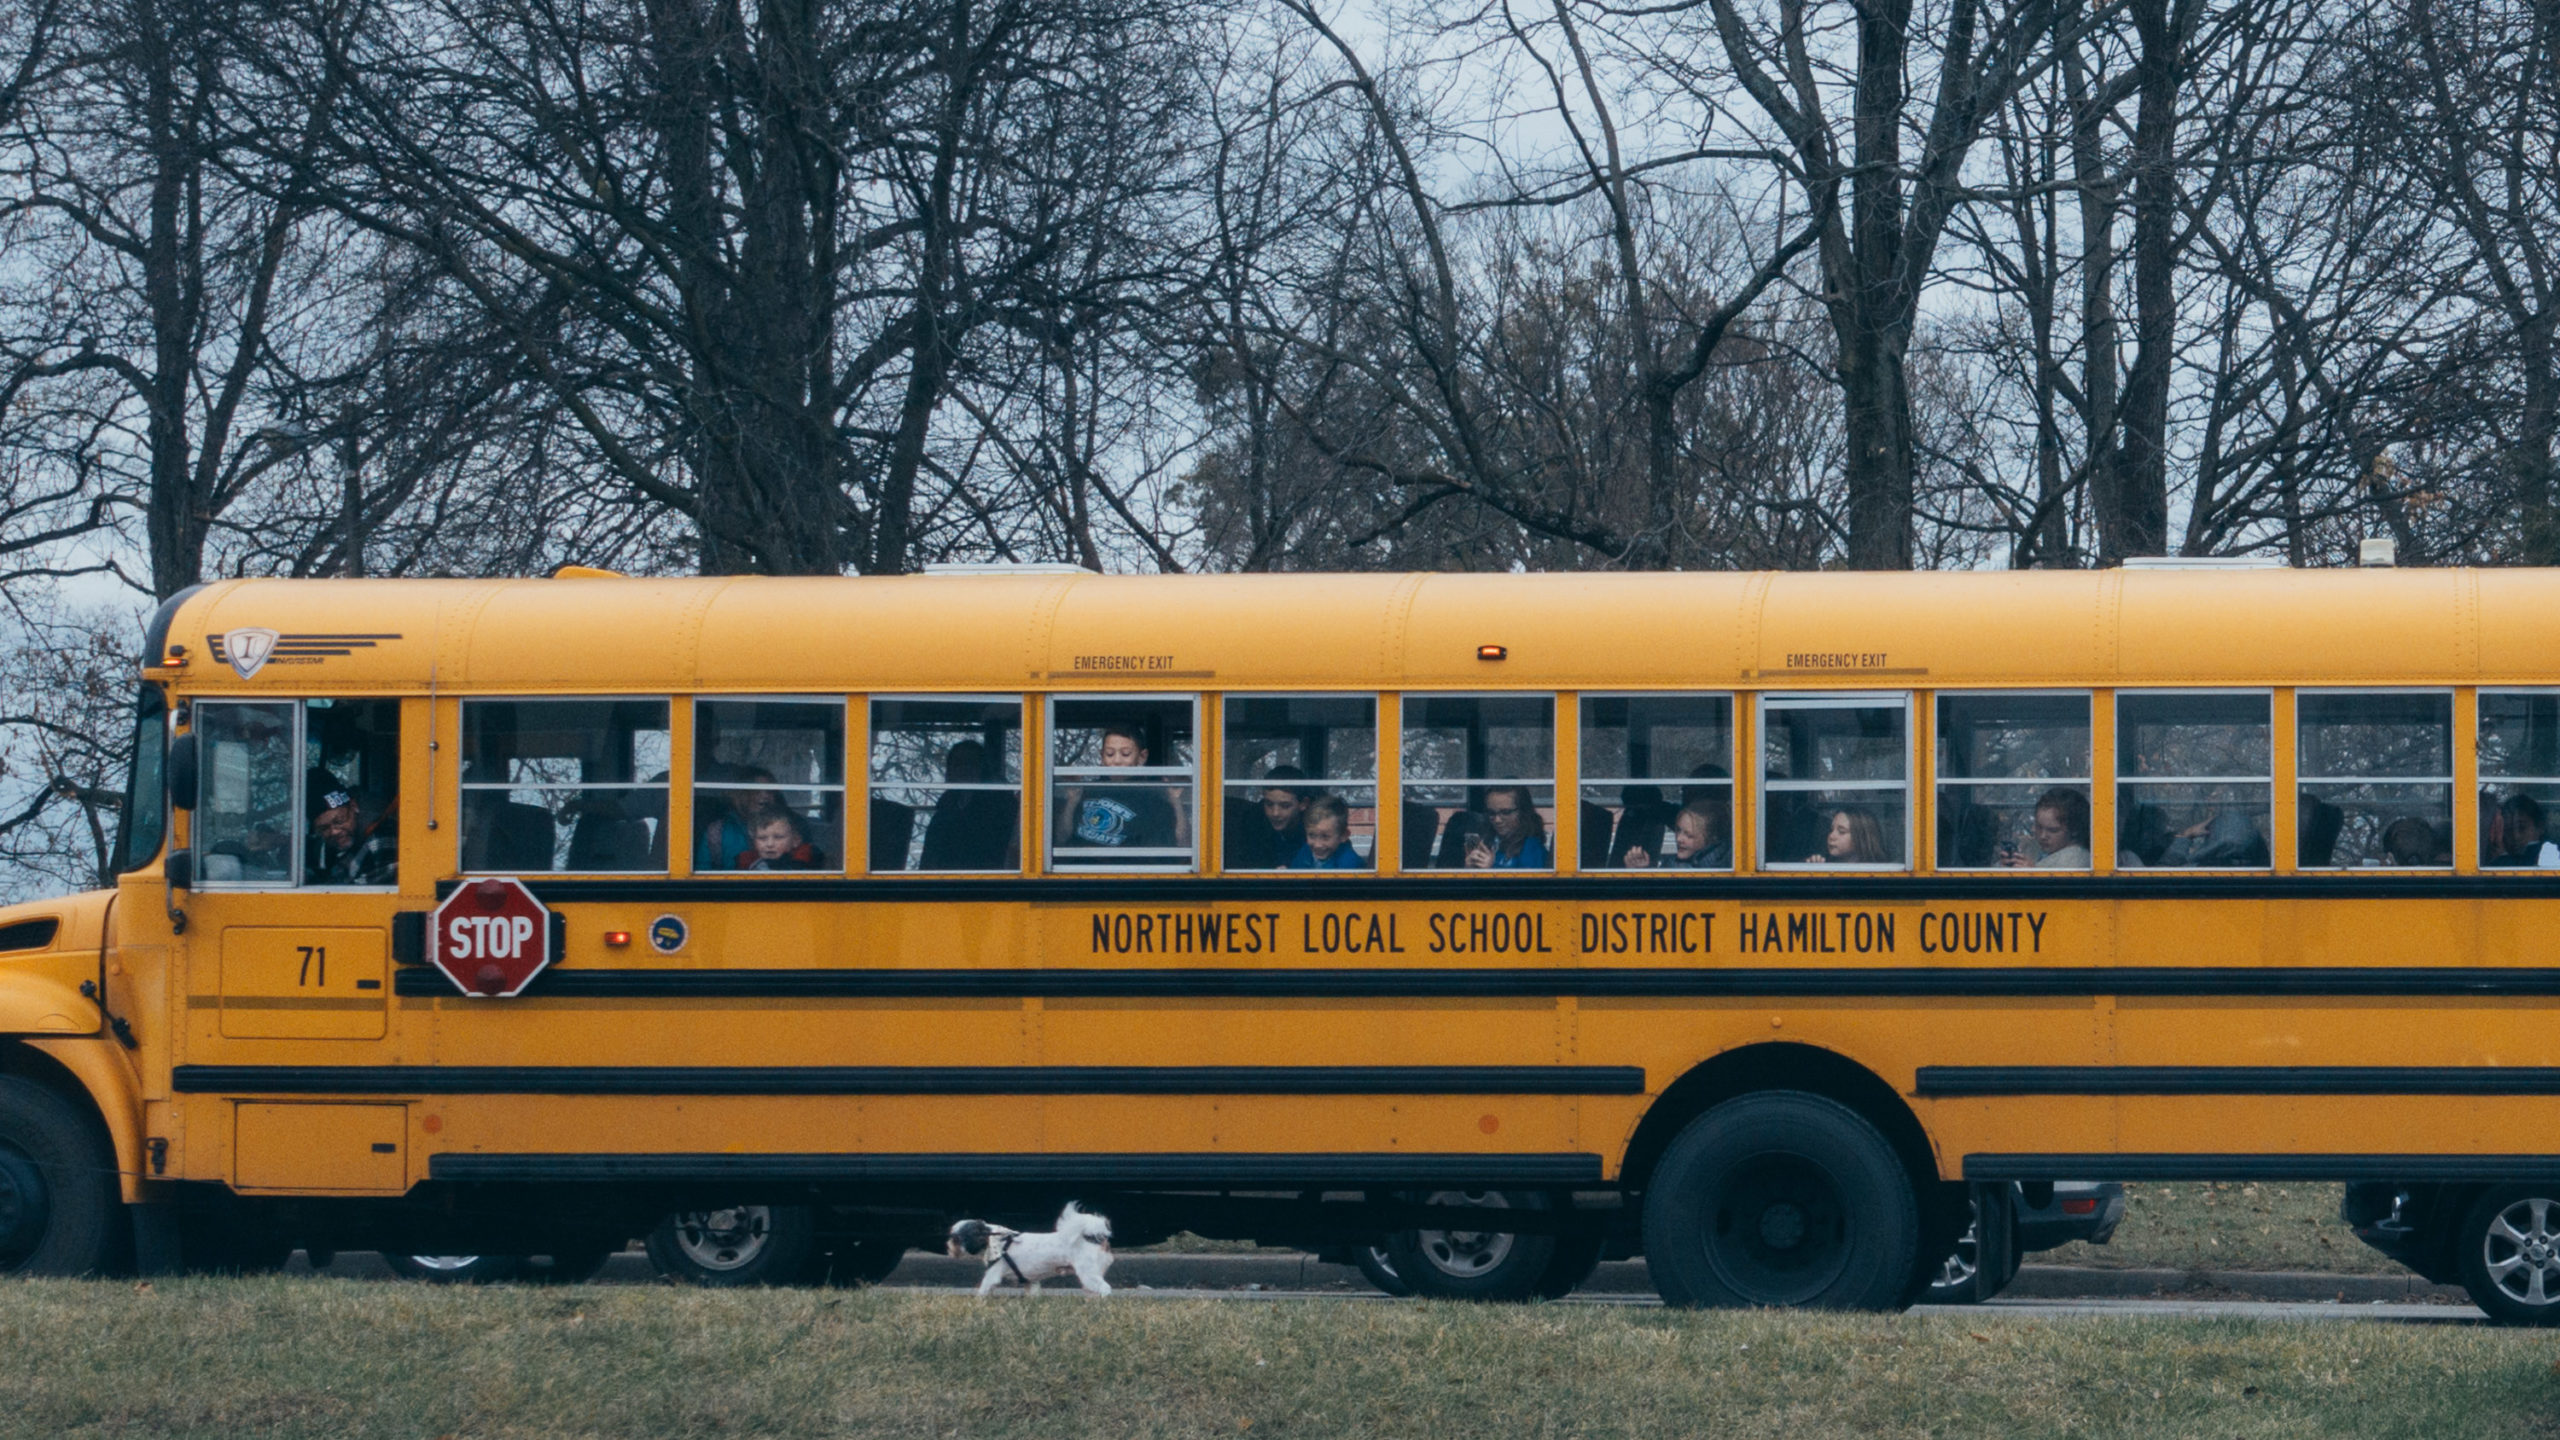 Kids look outside the windows of a yellow school bus to watch a dog